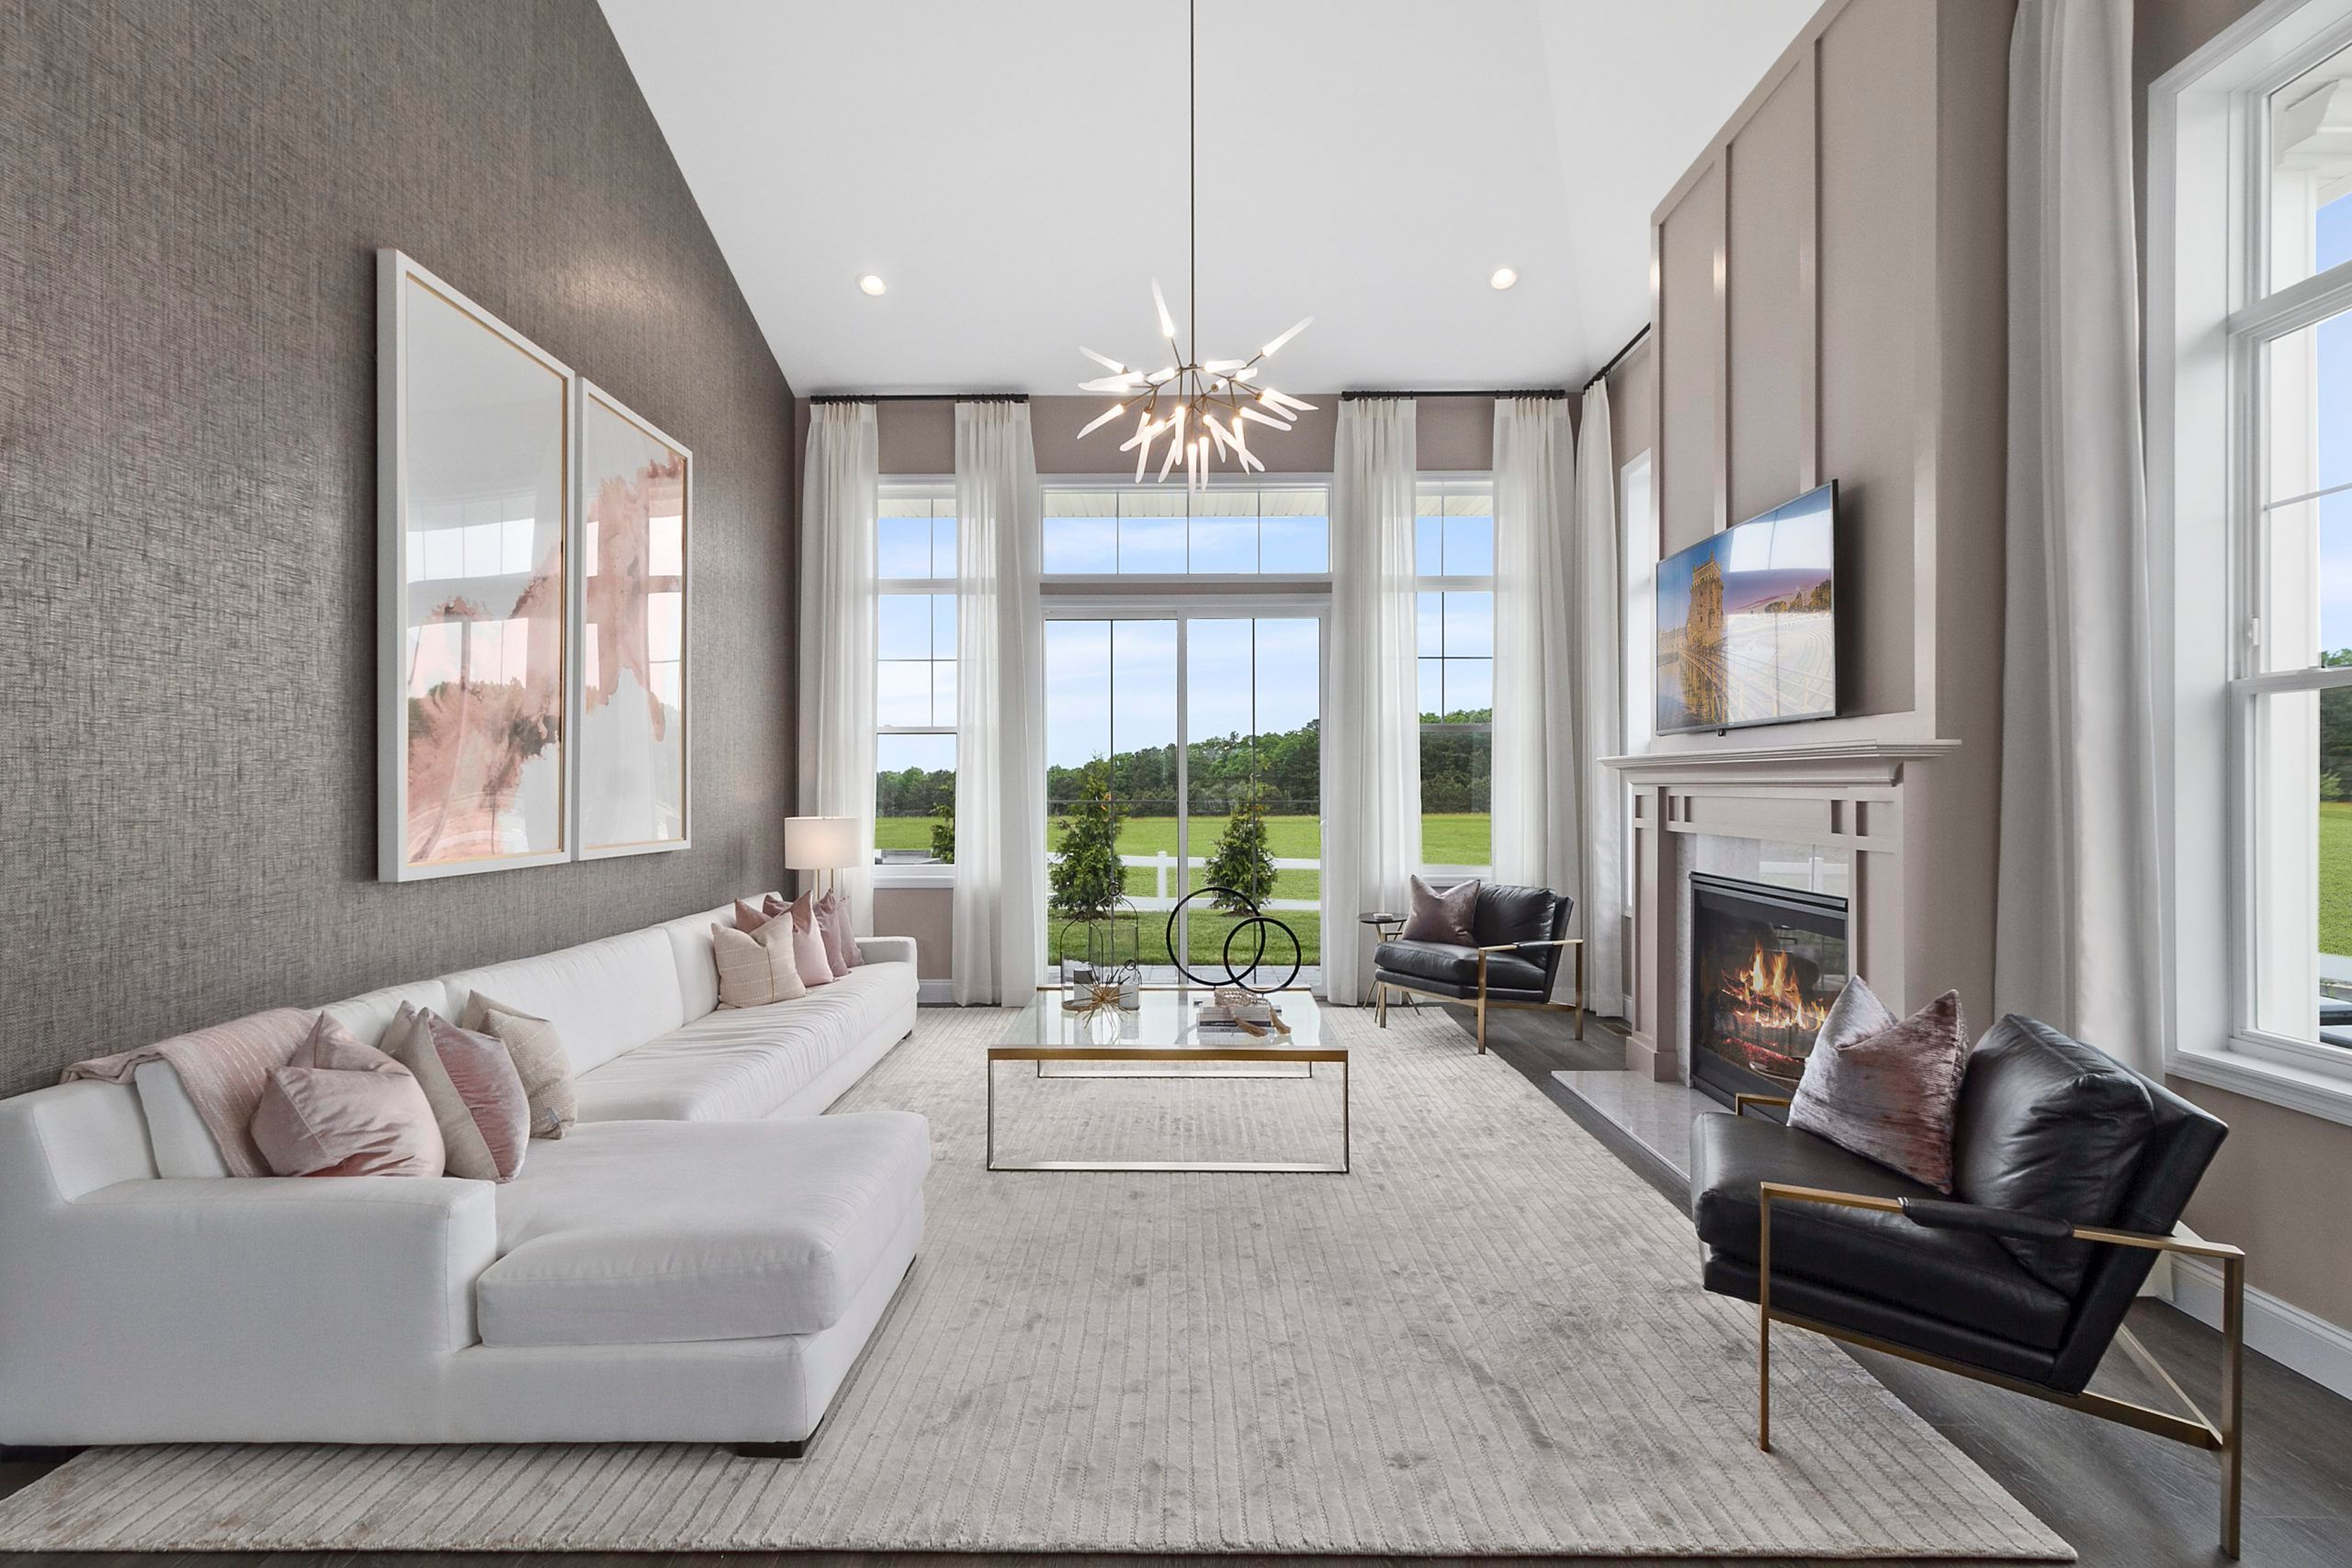 Living Area featured in The Essex By Beechwood Homes in Nassau-Suffolk, NY